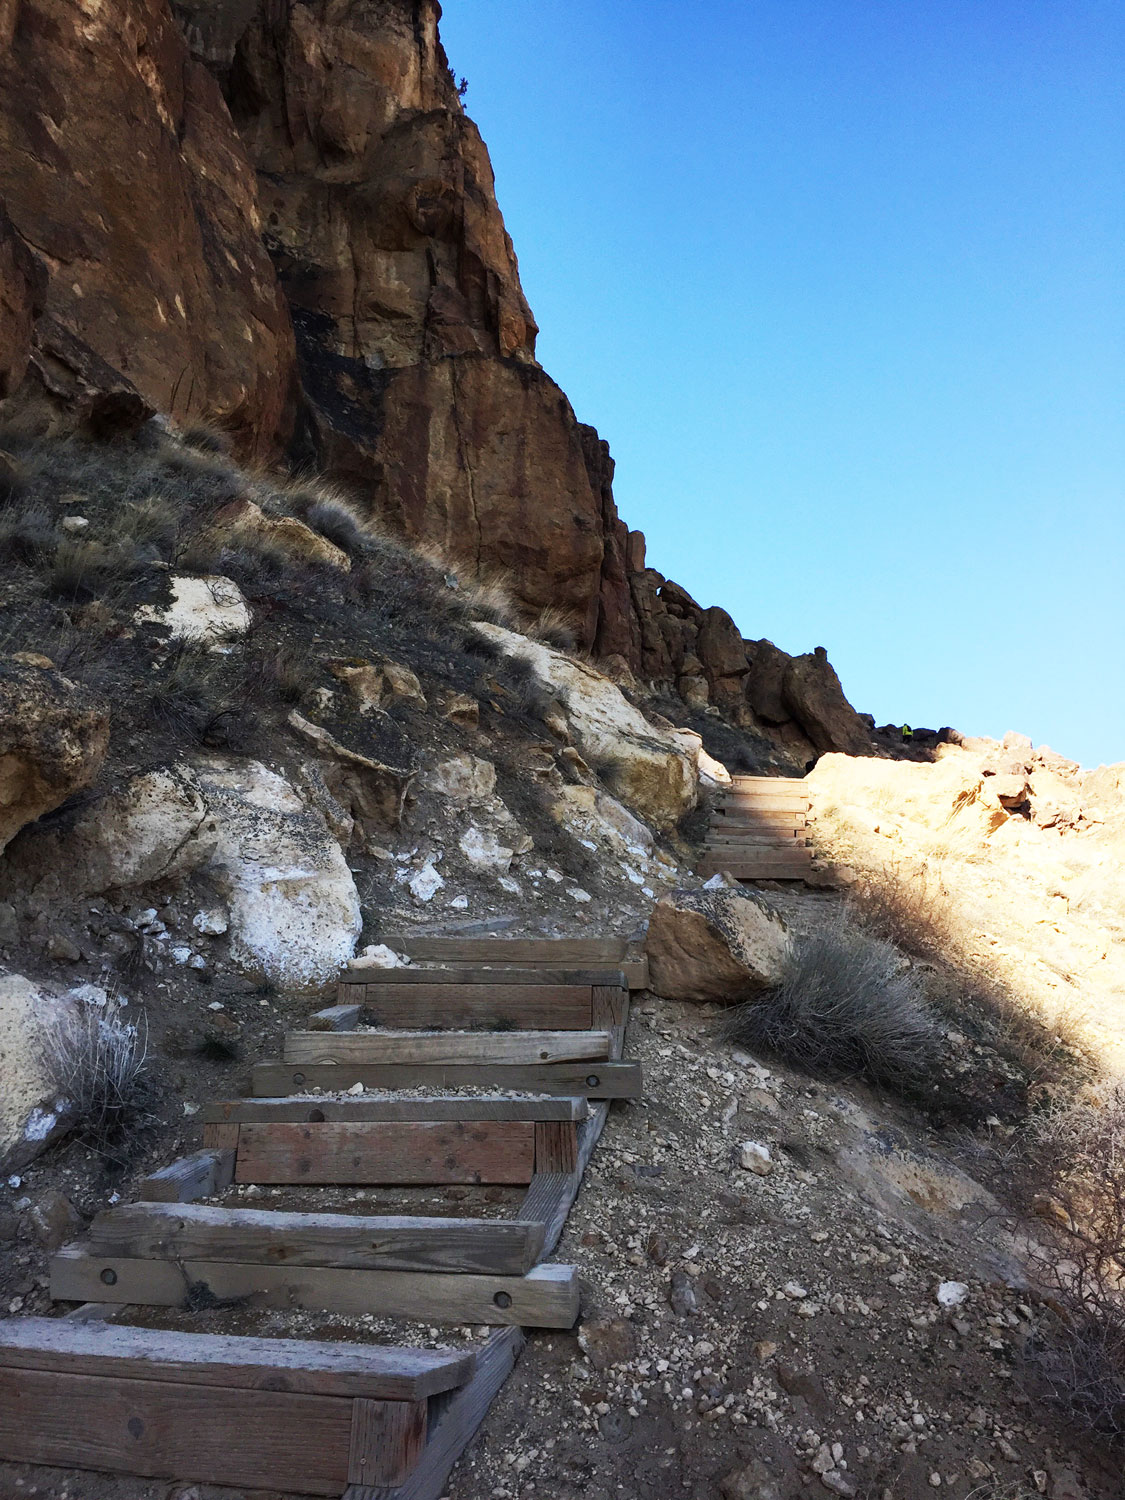 More stairs have been added each year on the Misery Ridge Trail due to accelerated erosion from those not staying on the trails  at Smith Rock State Park.